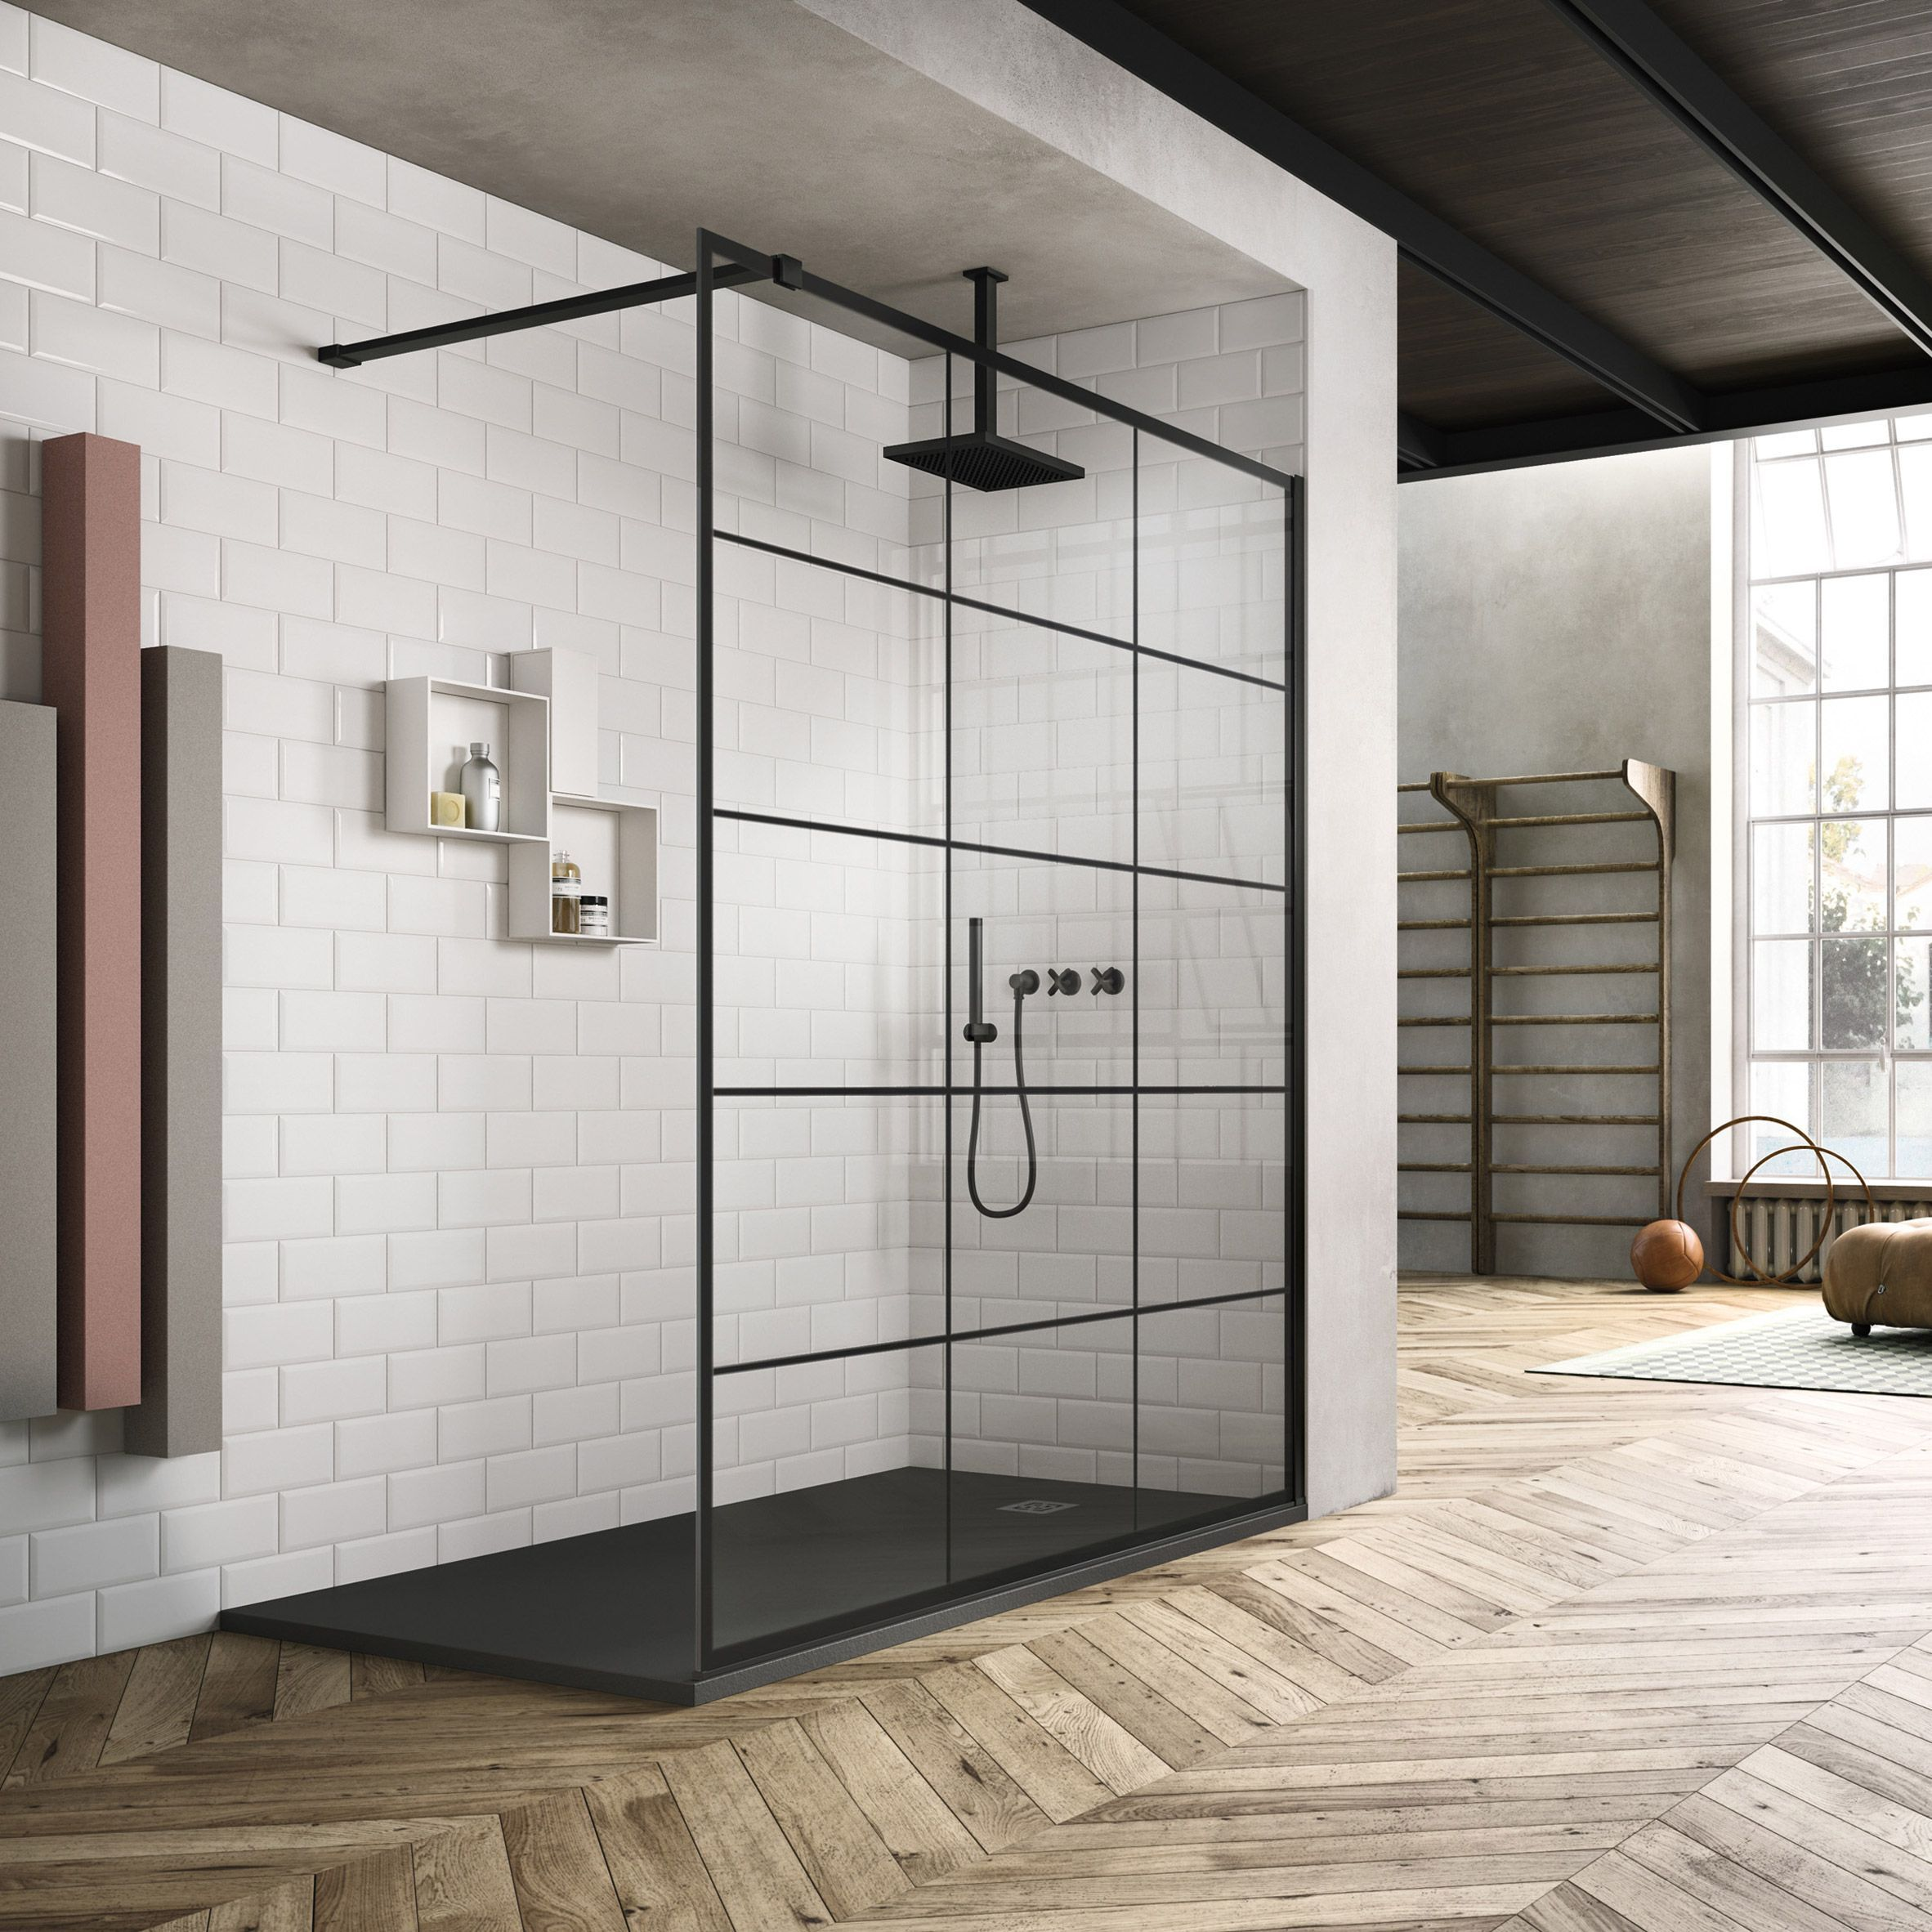 Eight of the best new designs for minimalist bathrooms ...